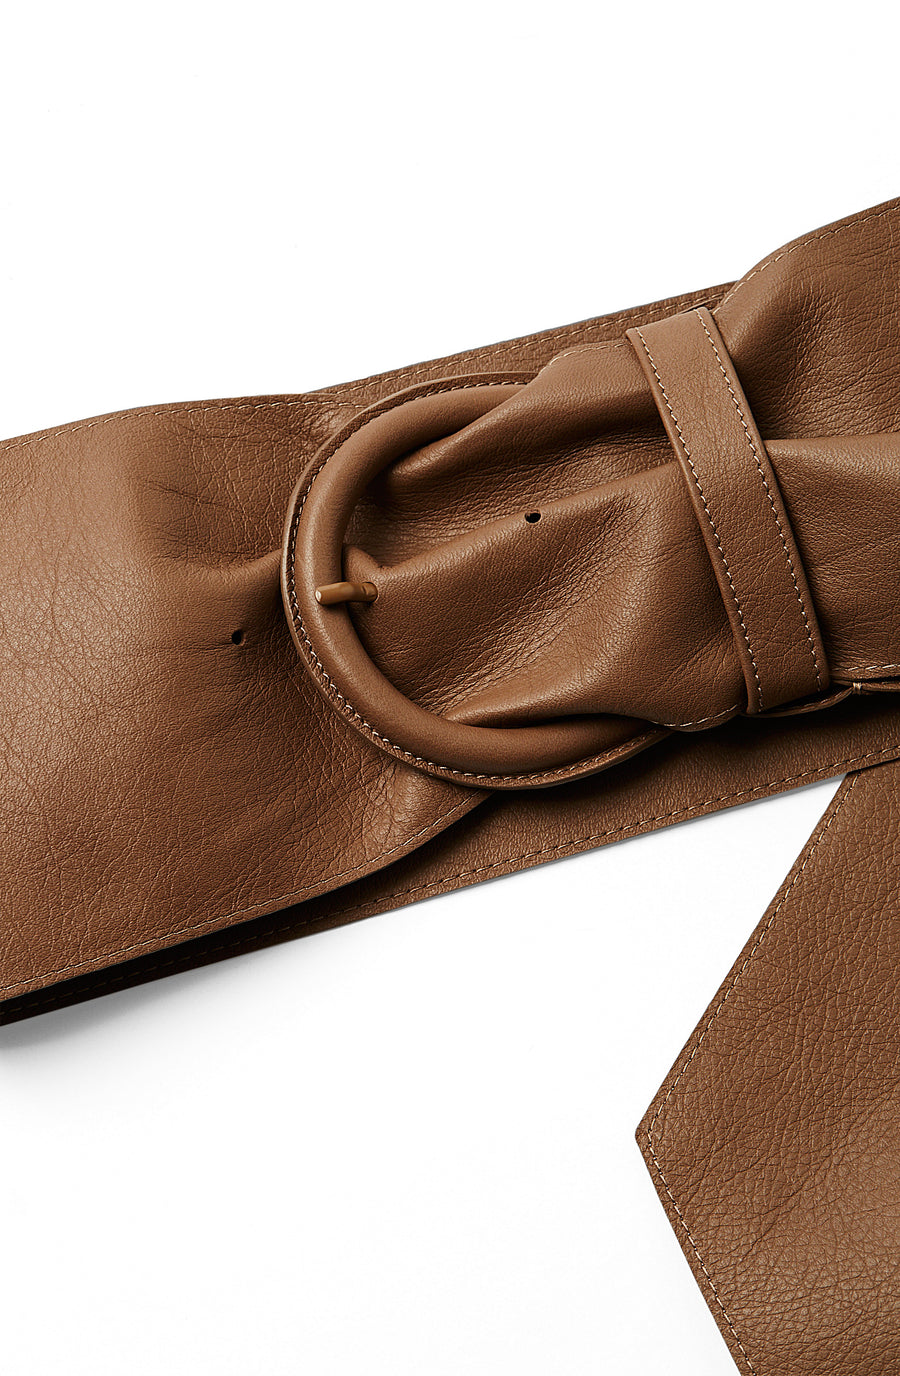 Ruched Leather Belt, soft nappa leather, leather covered buckle, tapered witH widest point measuring 14.5cm, color taupe